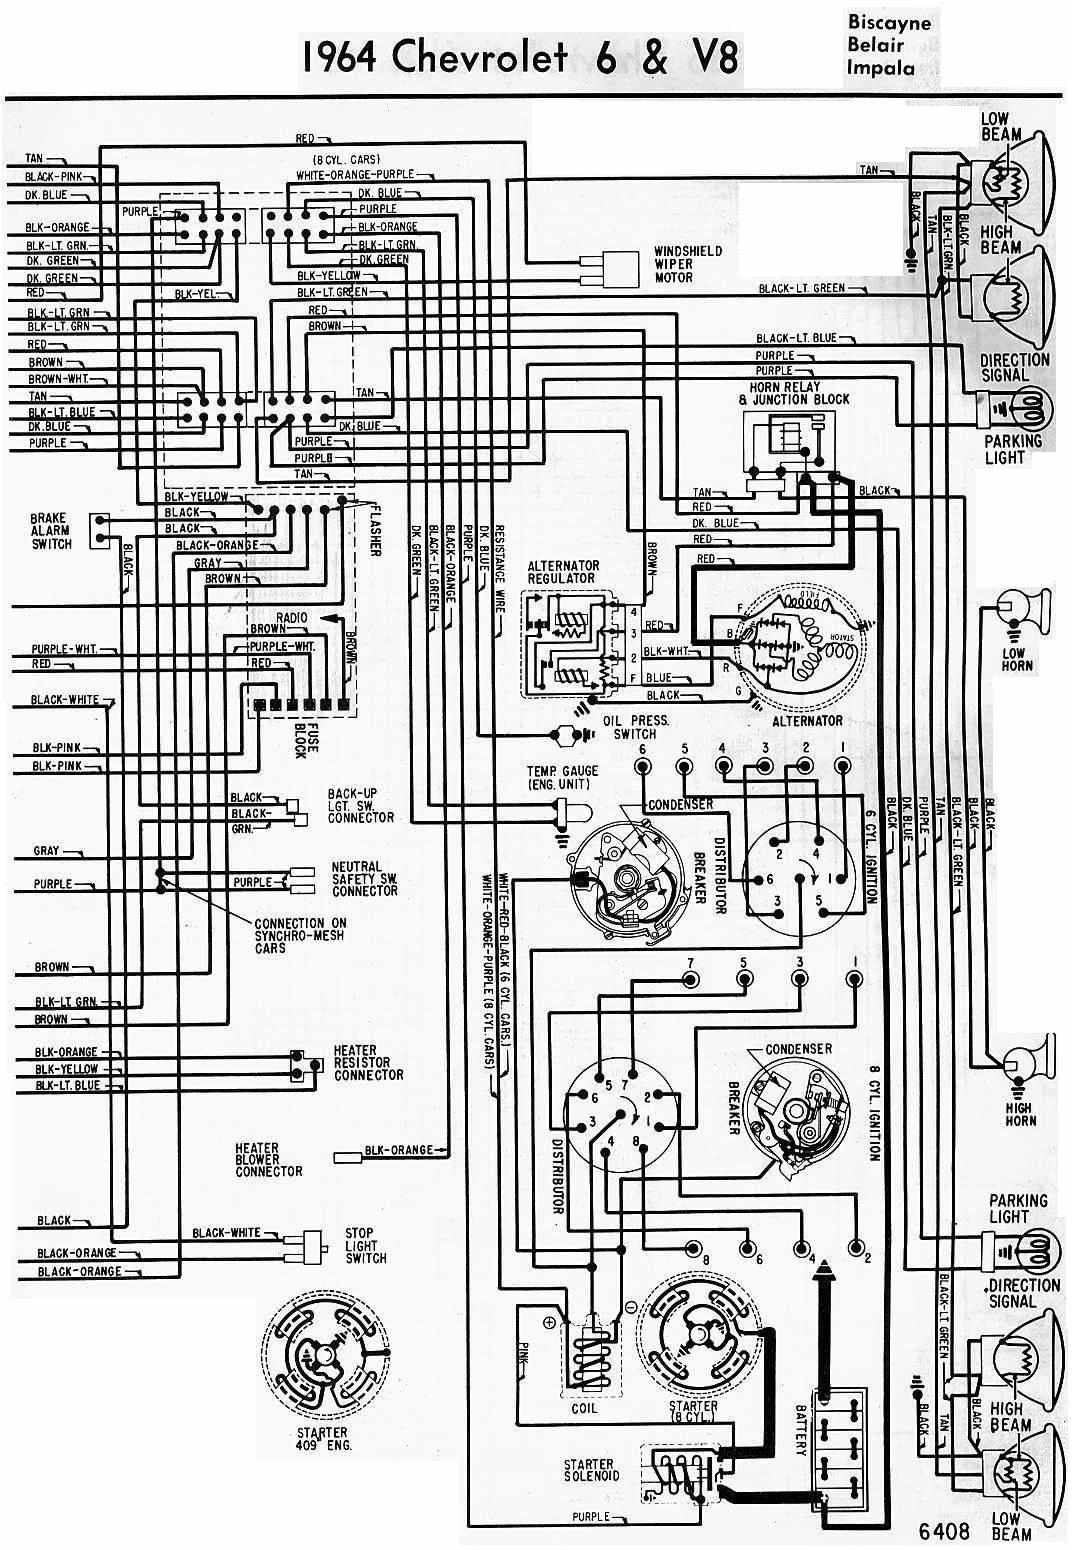 1963 chevy impala ignition wiring for wiring schematic diagram1965 chevy impala ignition switch wiring diagram wiring library 1974 chevy impala electrical wiring diagram of